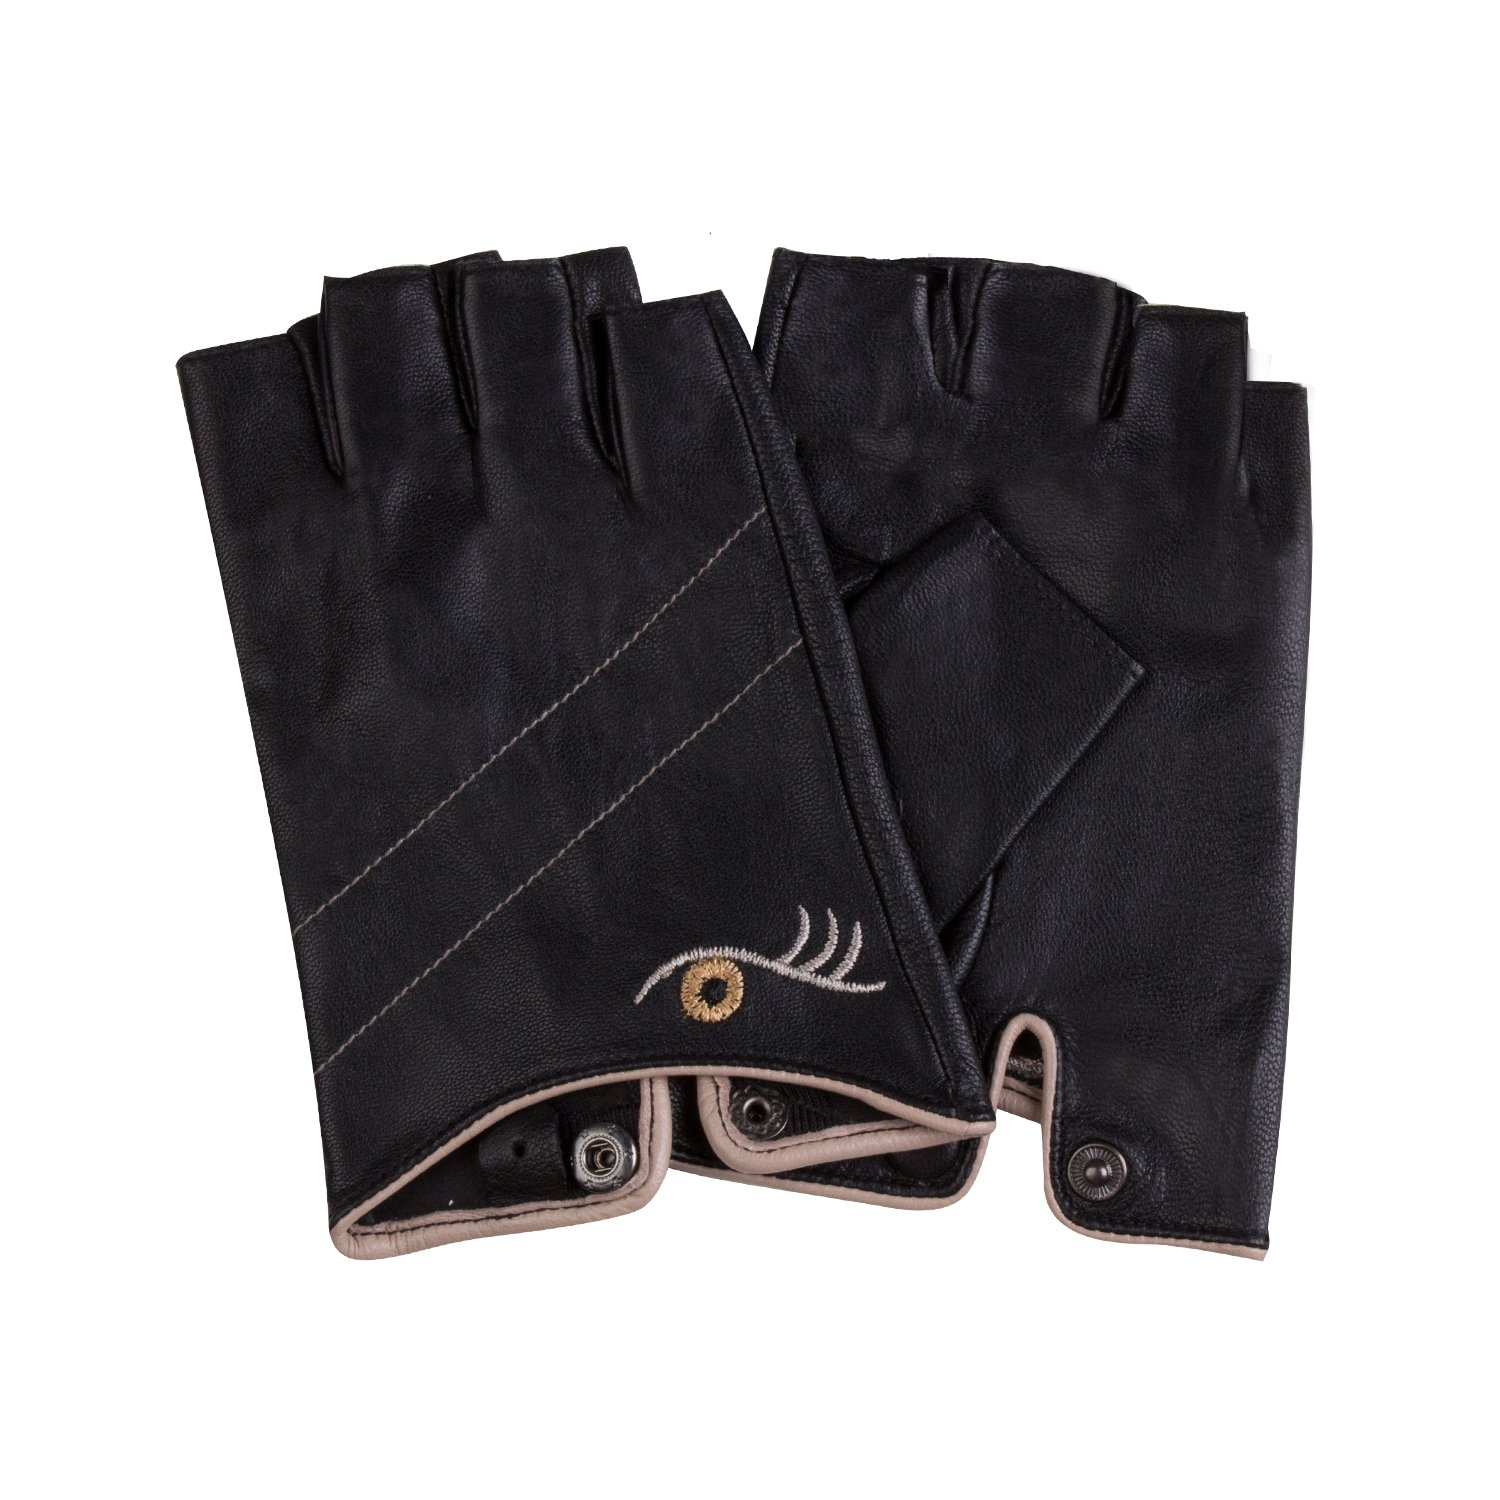 Fioretto Womens Sexy Fingerless Leather Gloves Half Finger Driving Motorcycle Cycling Unlined Ladies Leather Gloves Women's Gift Black M by Fioretto (Image #4)